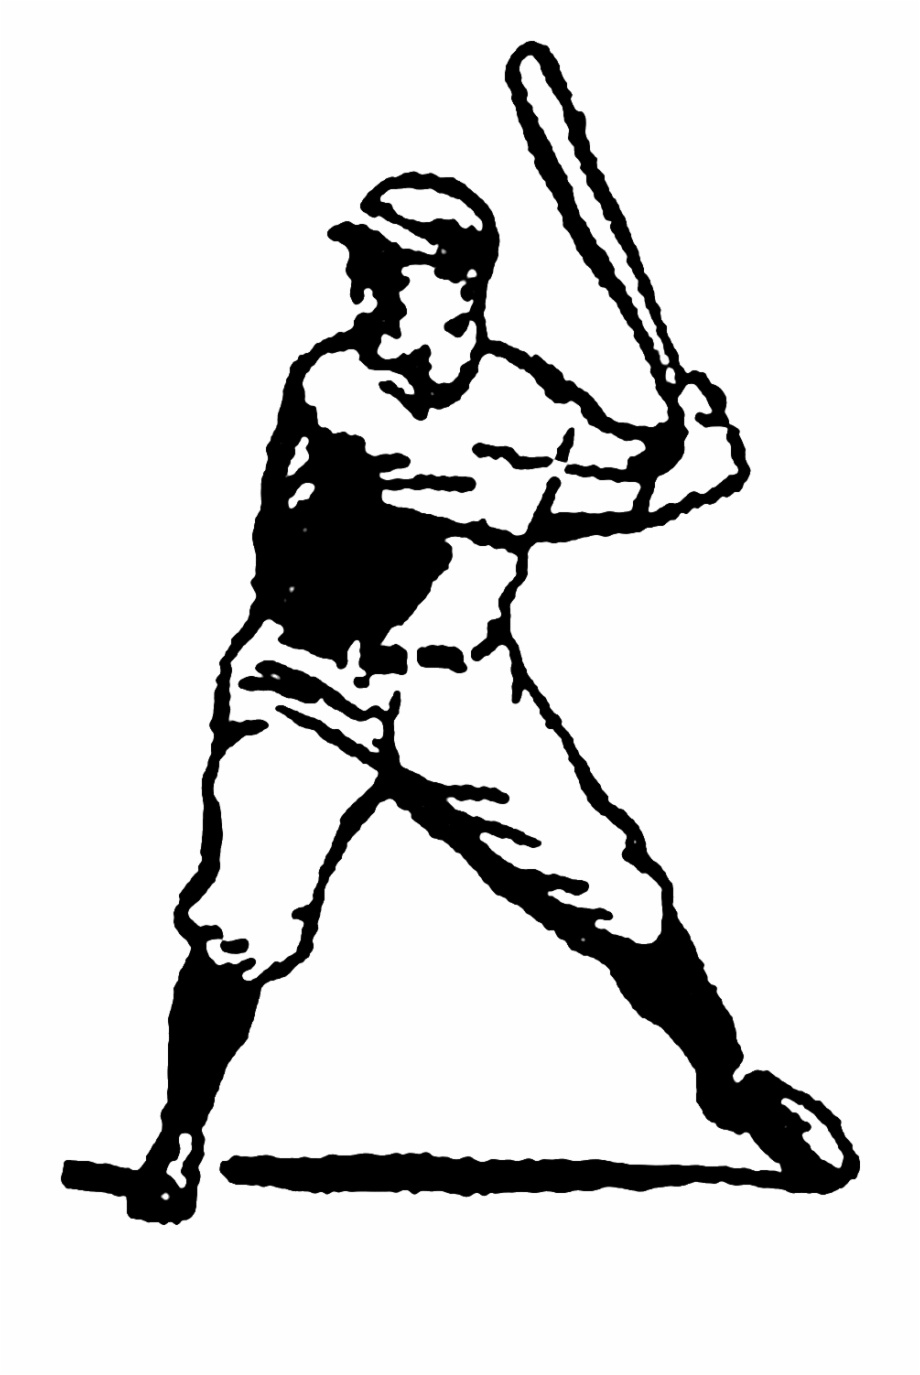 Vintage baseball players clipart picture freeuse library Vintage Baseball Vector Freeuse Download Free - Clip Art ... picture freeuse library